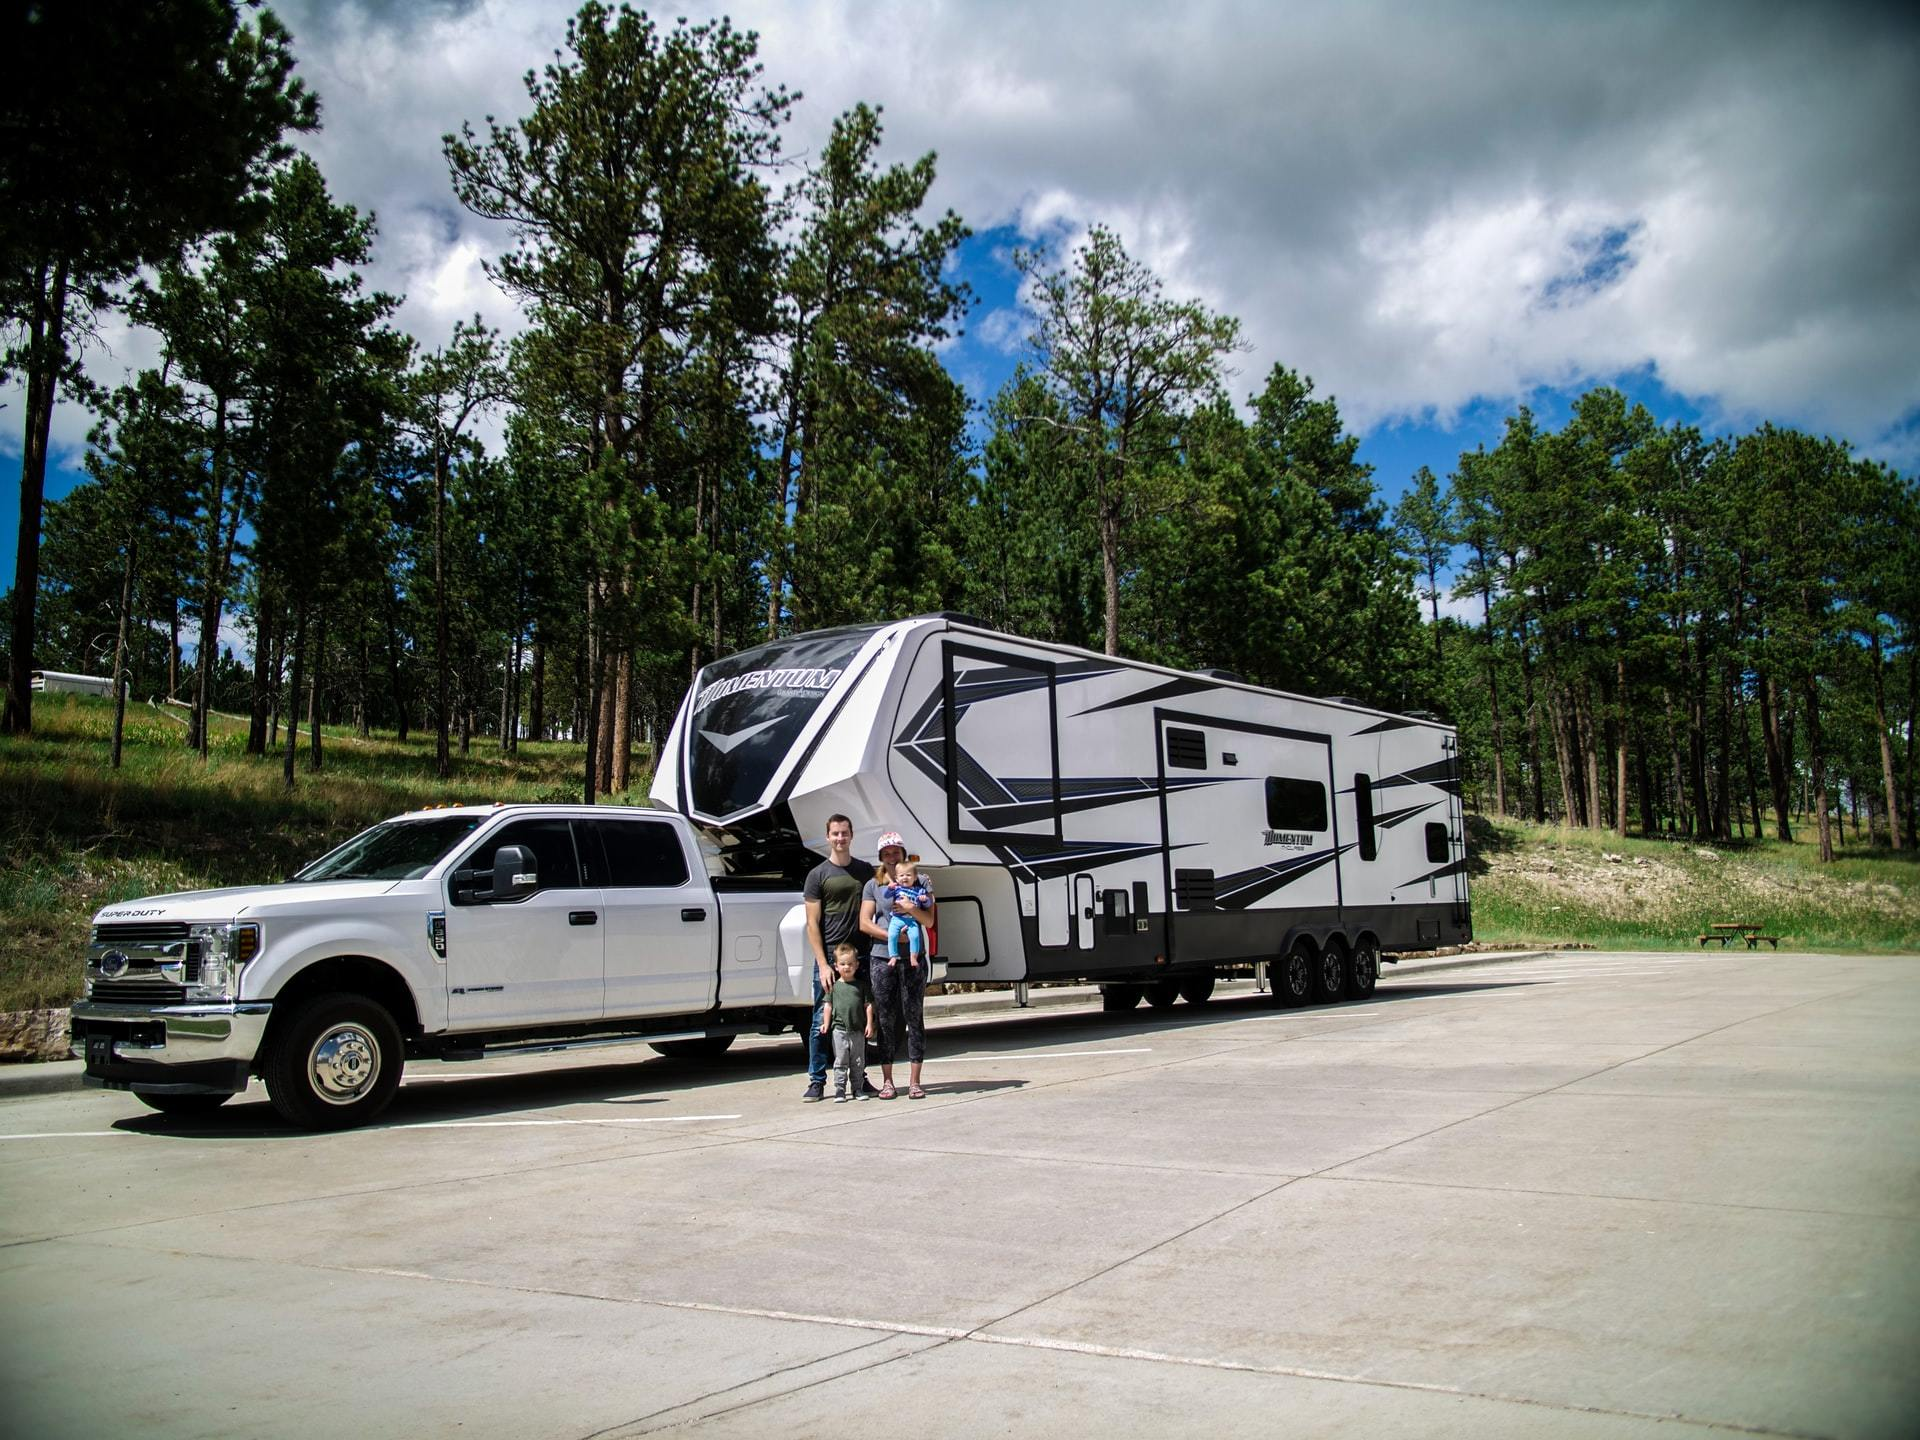 How to Install a Car Alarm in Your RV: Everything You Should Know